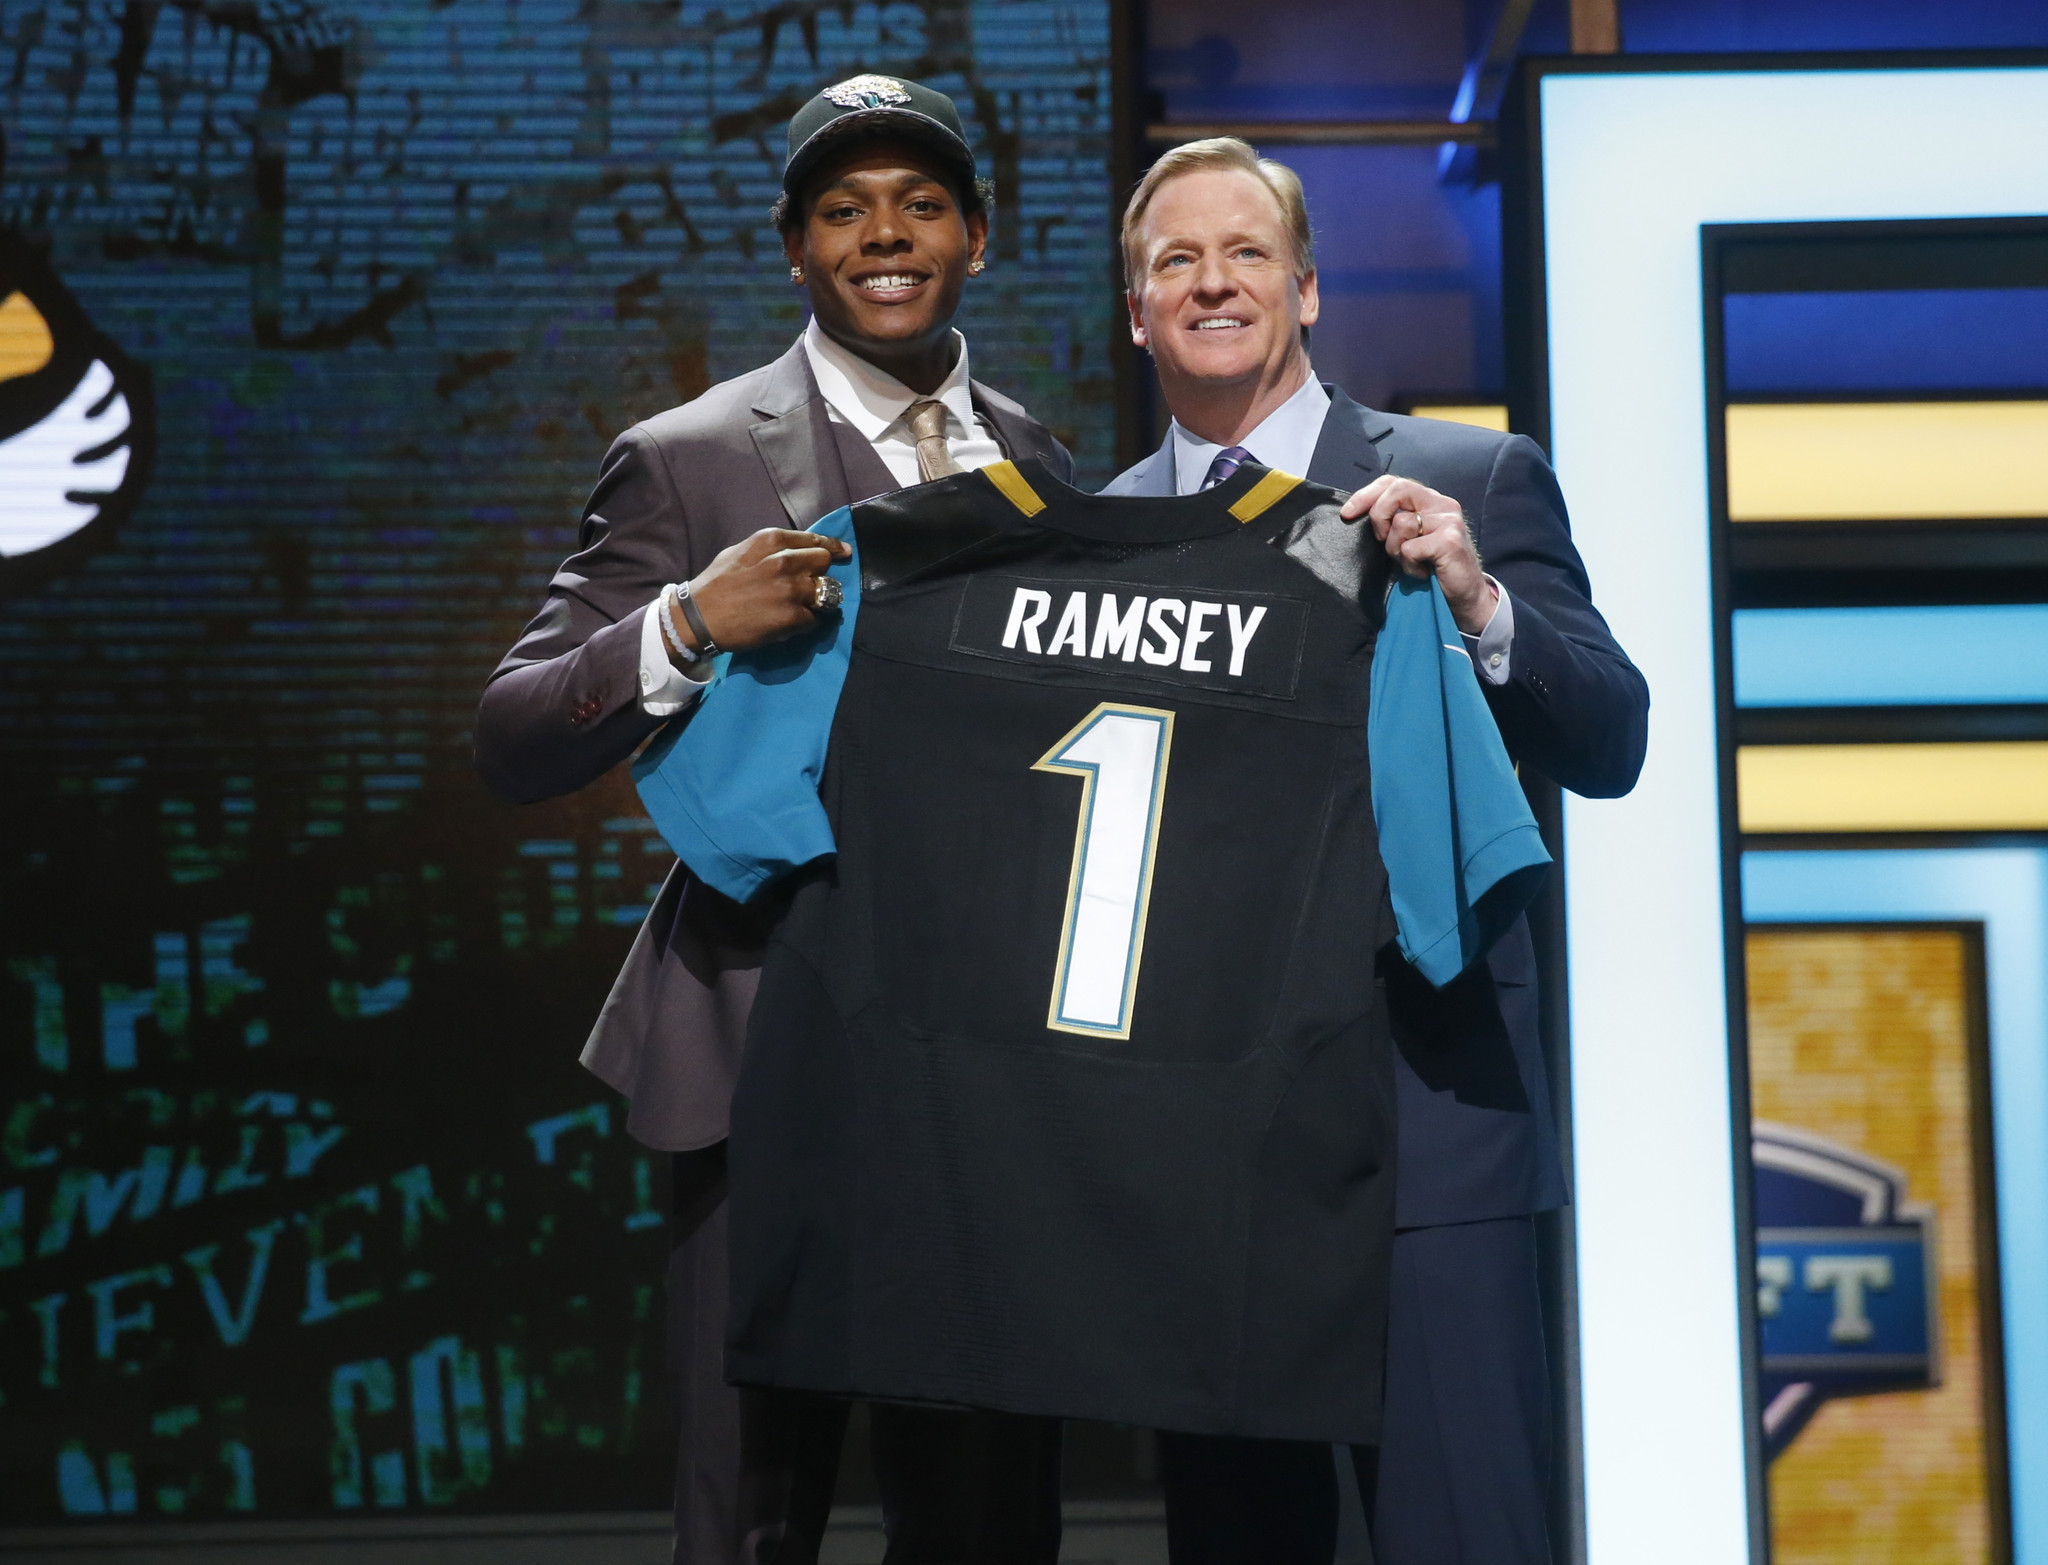 Jaguars select CB Jalen Ramsey with fifth pick in NFL draft LA Times